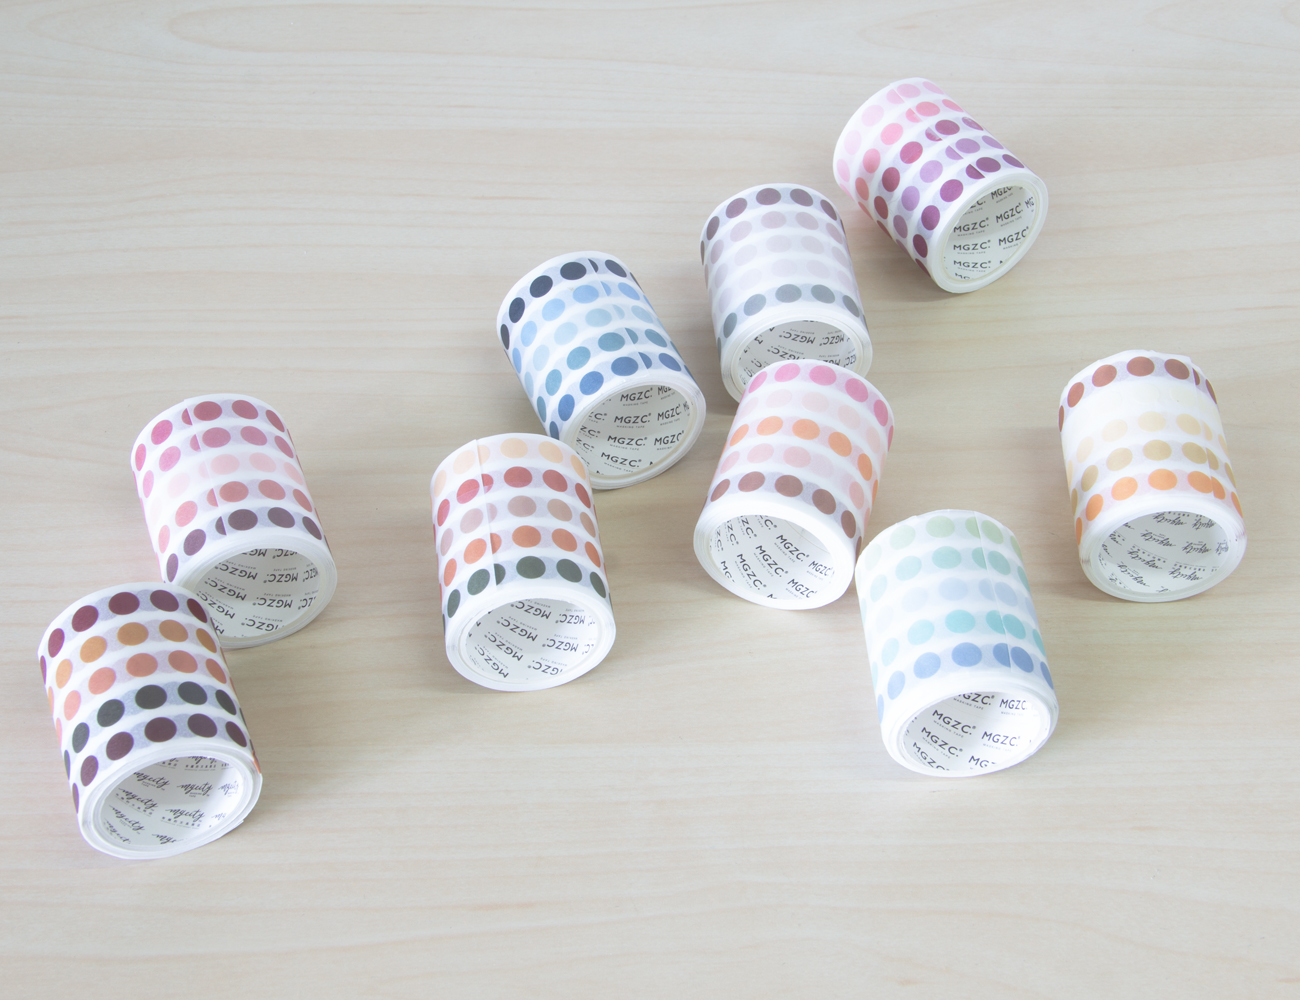 Mini Dot Matte Sticker Roll (6 mm)